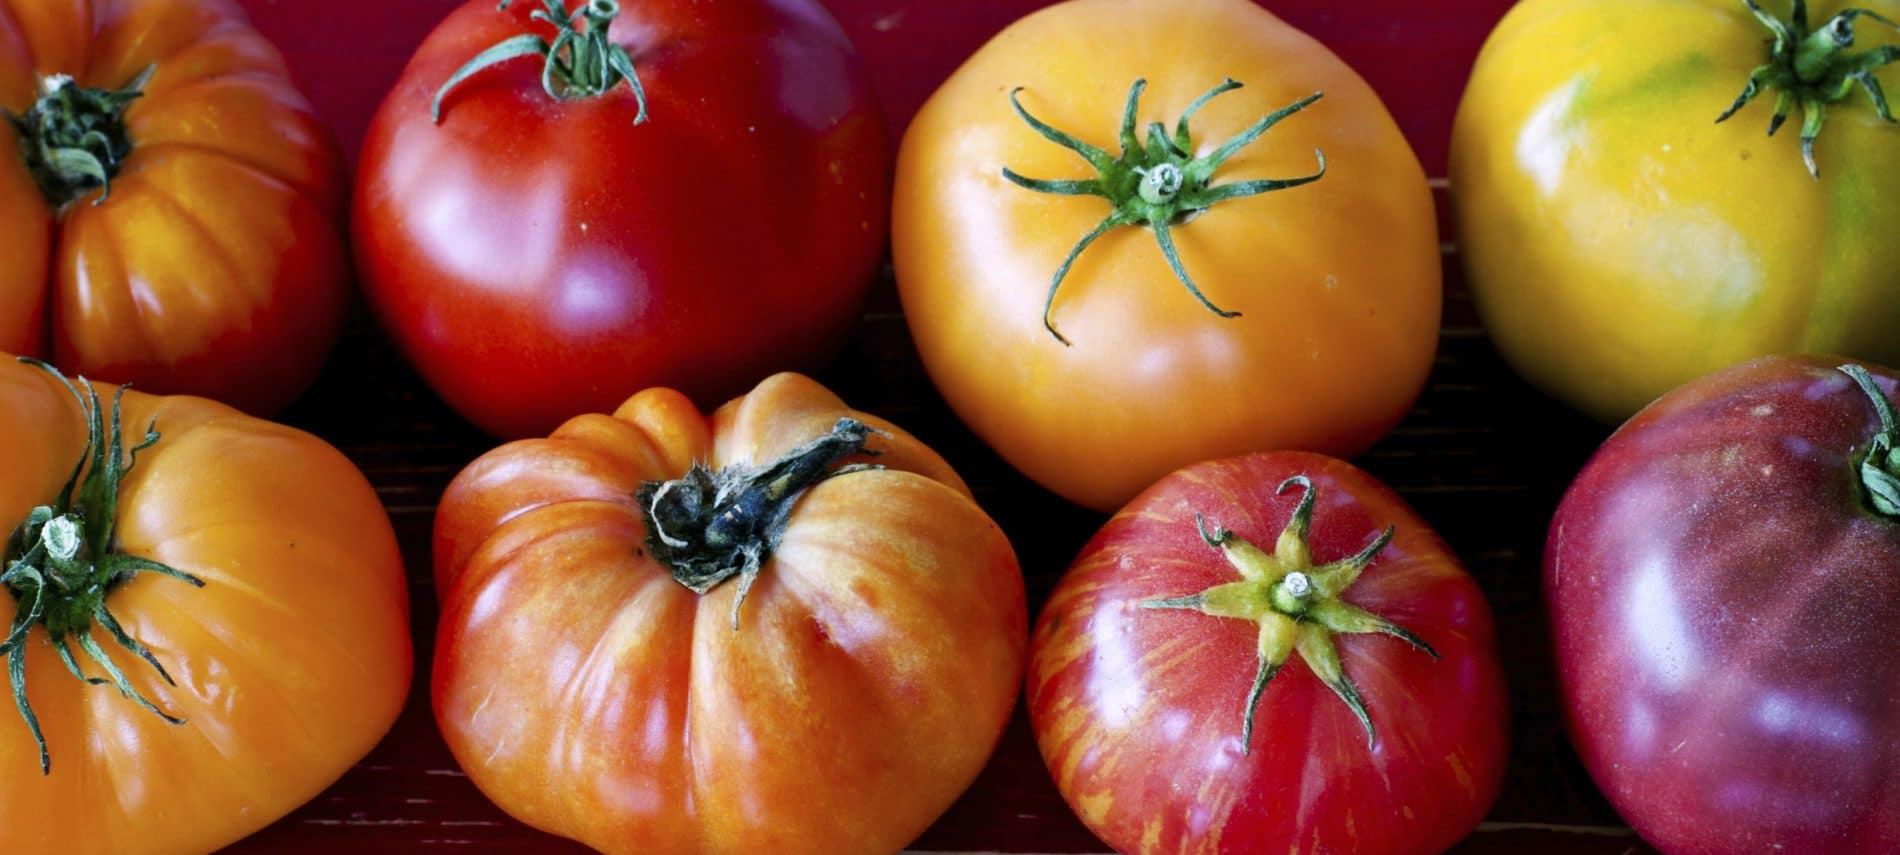 tomatoes of various shapes, sizes, and color